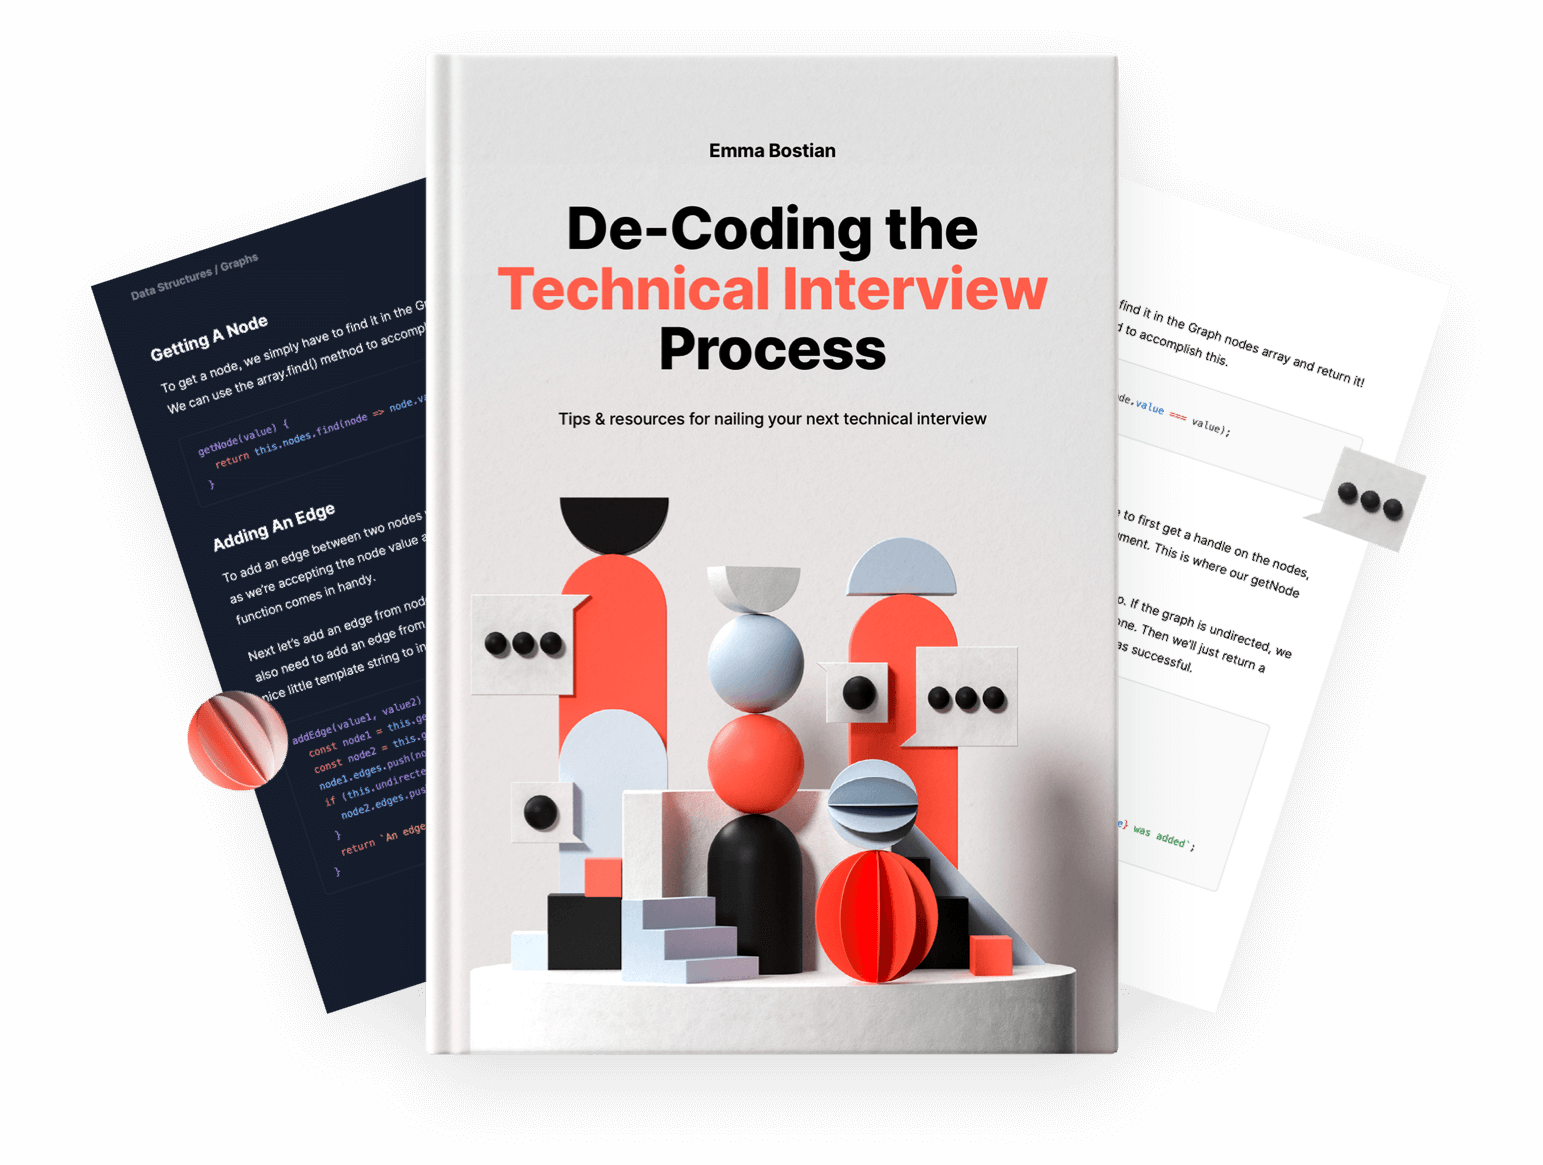 De-Coding the Technical Interview Process - book by Emma Bostian